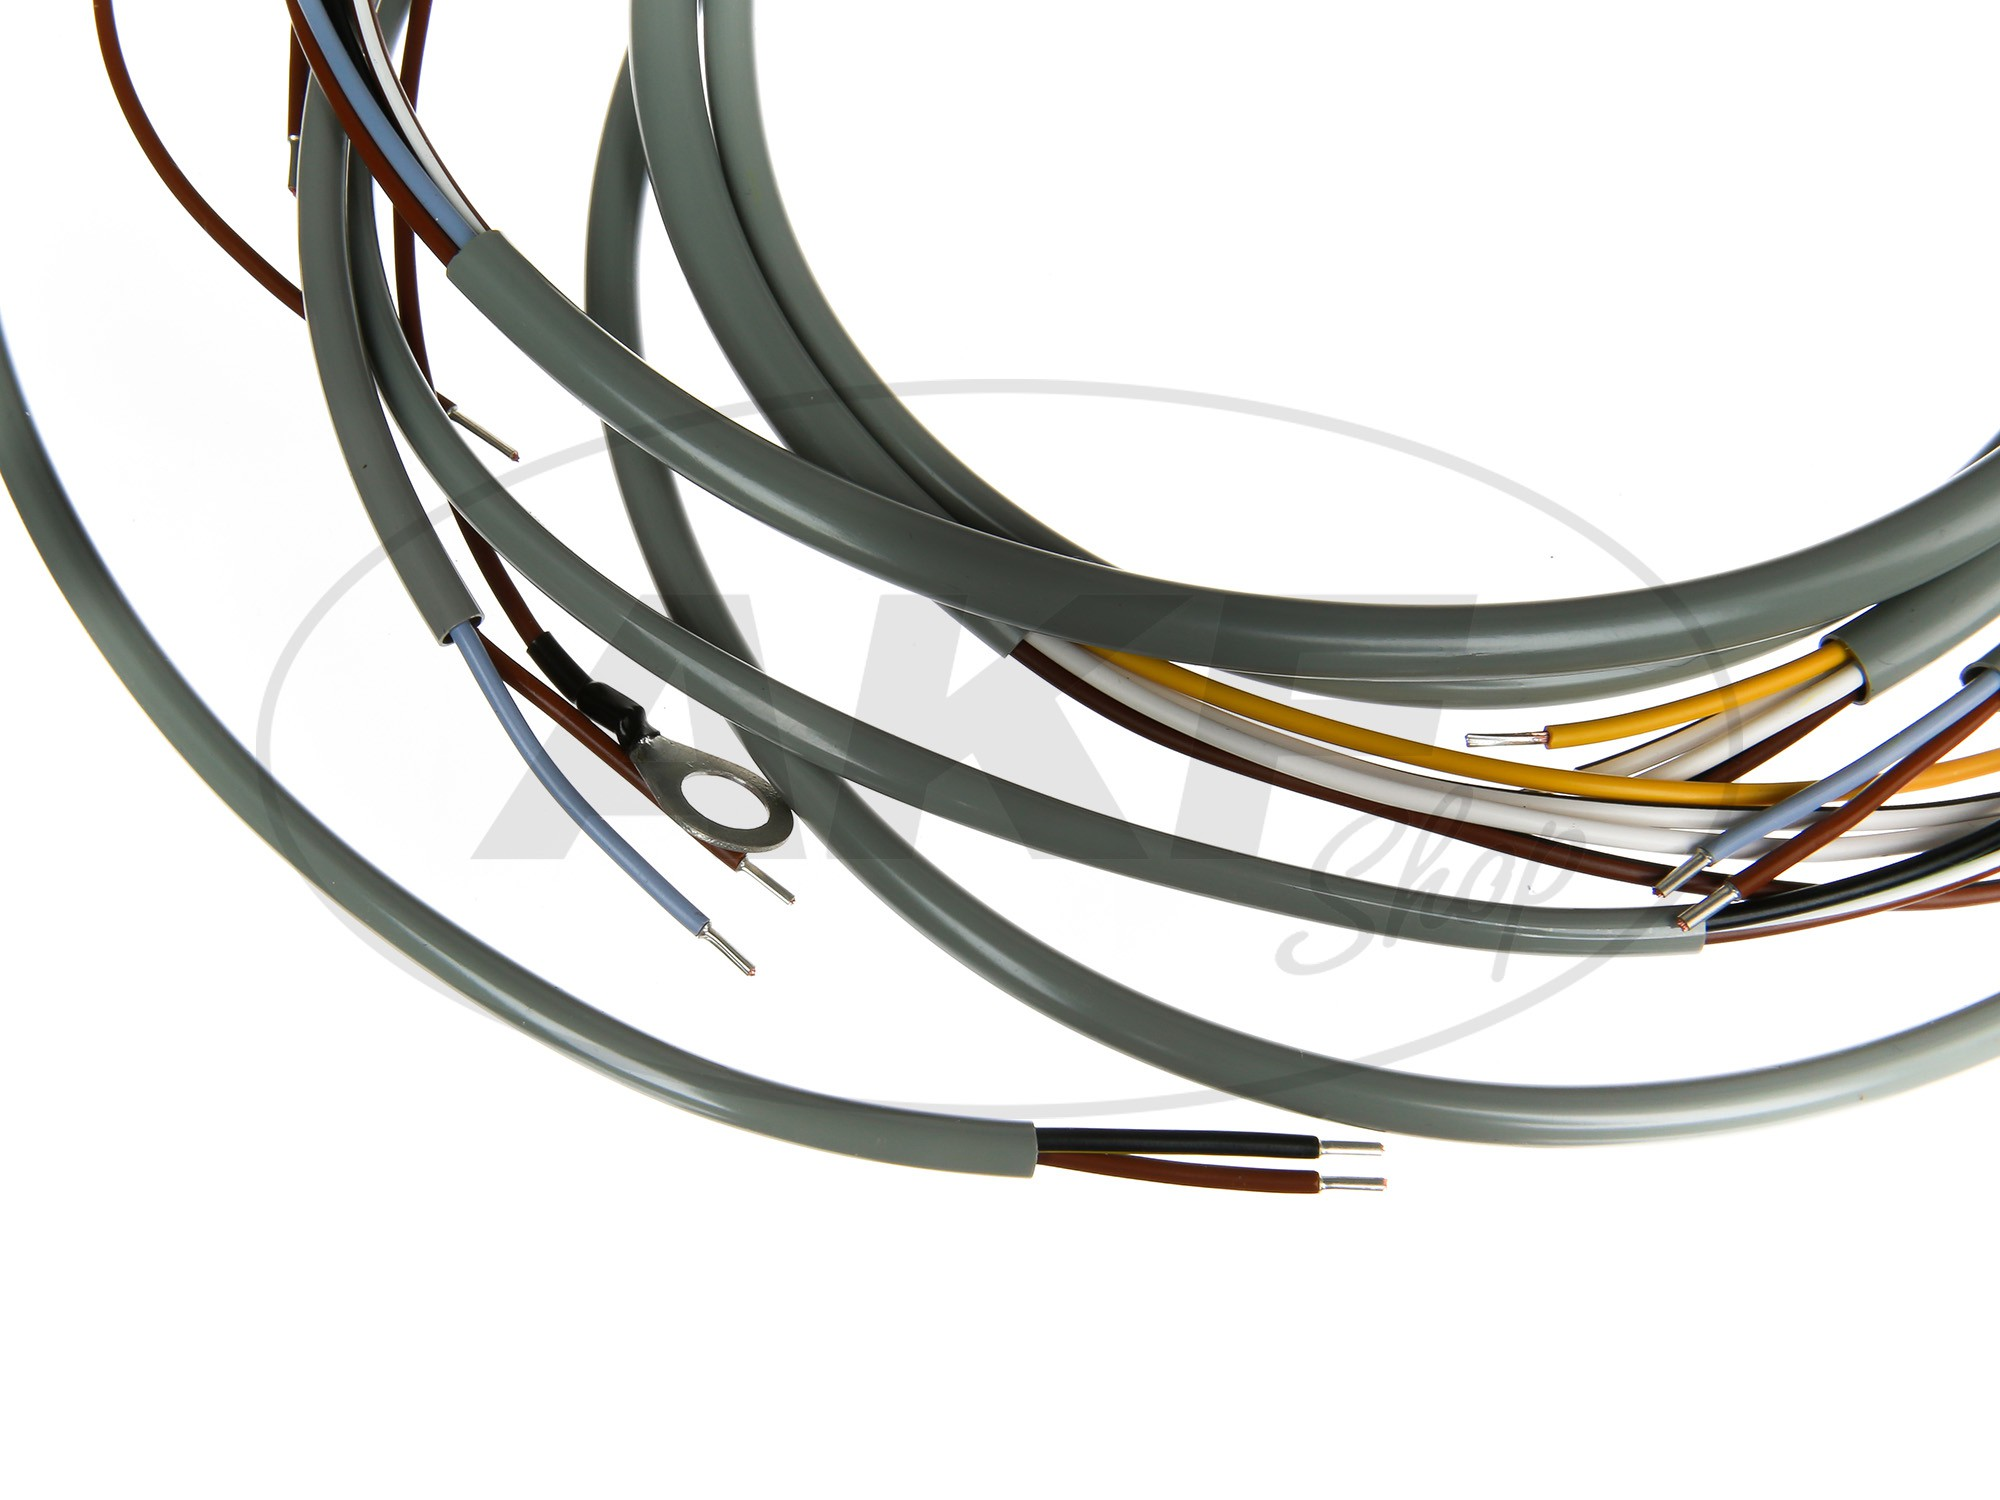 Wiring Harness Sr2 With Ground Direct Current Gray Incl Image 2